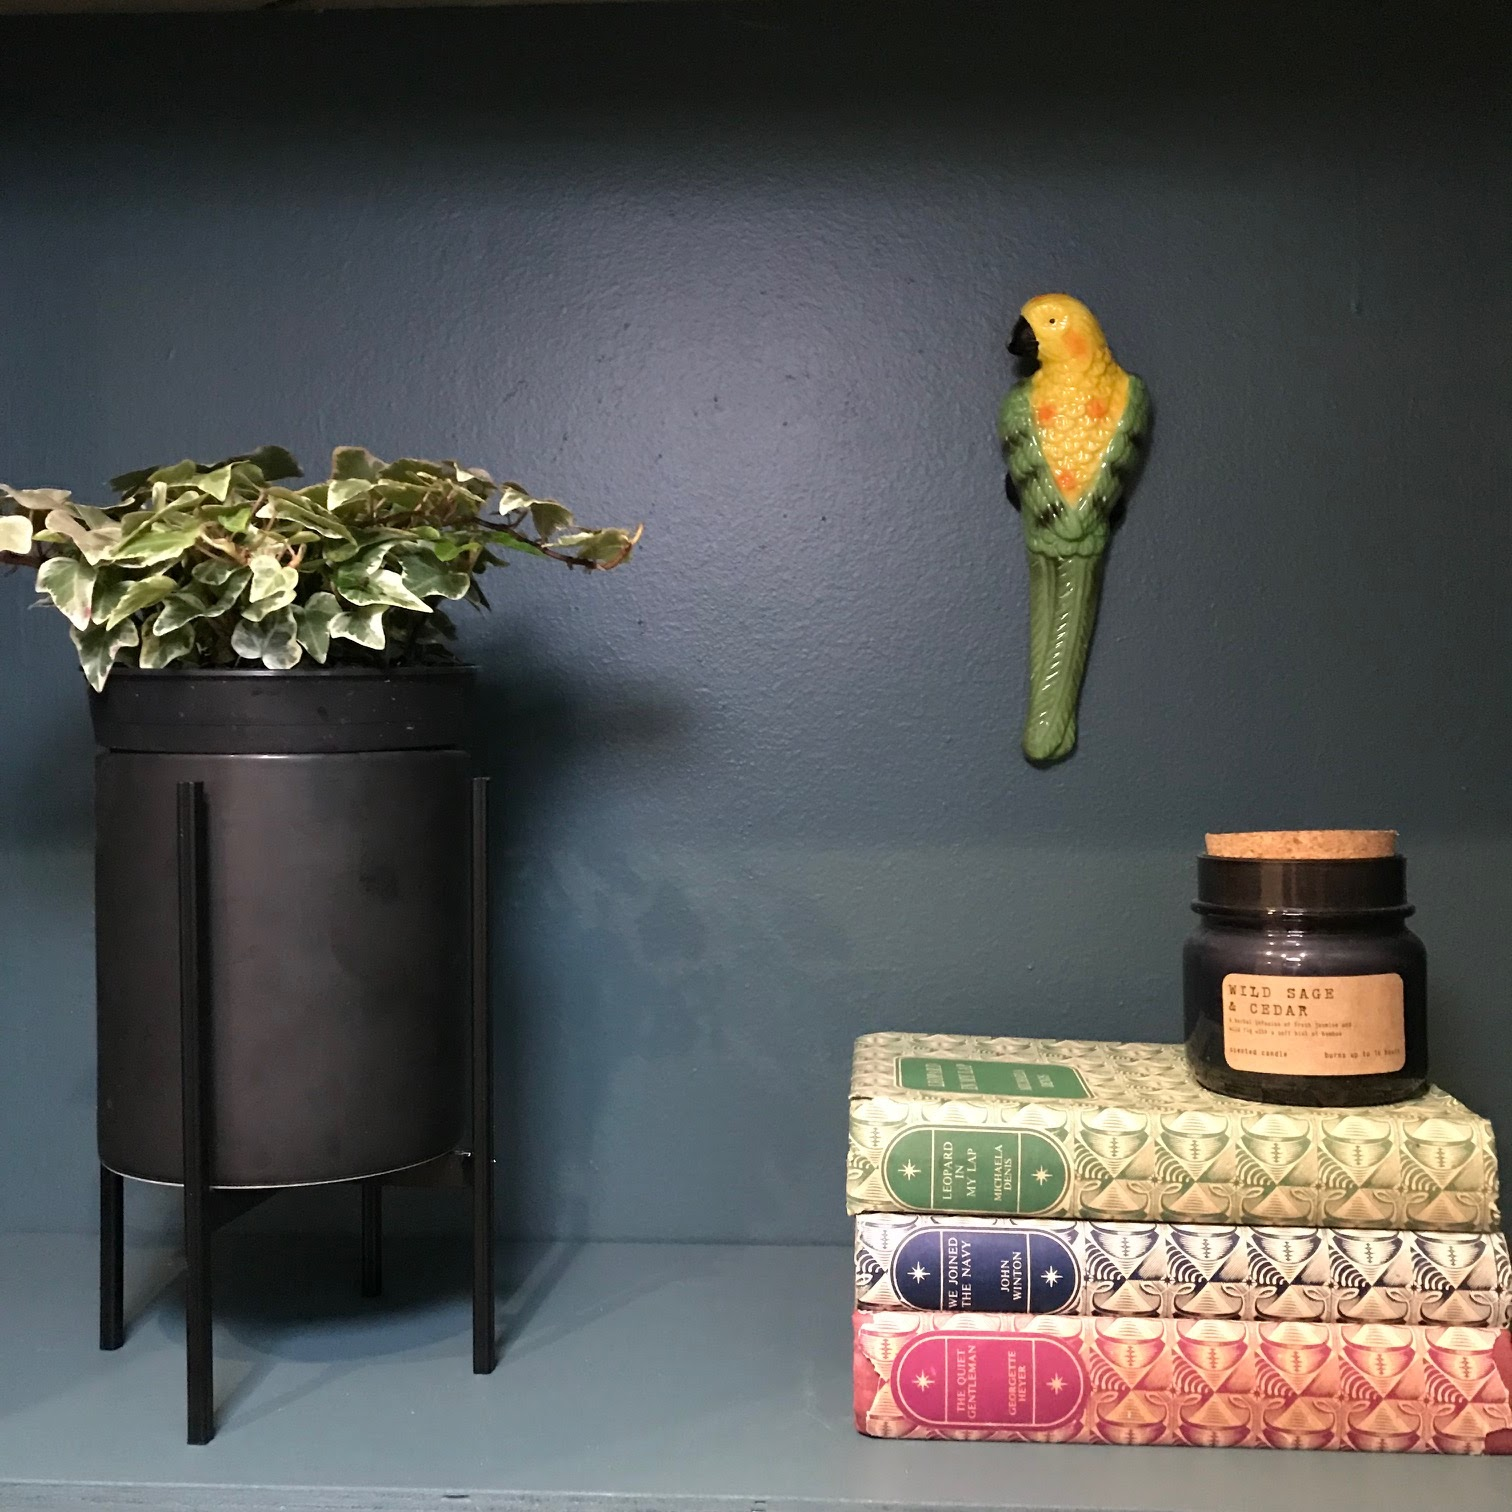 Little touches can change a room